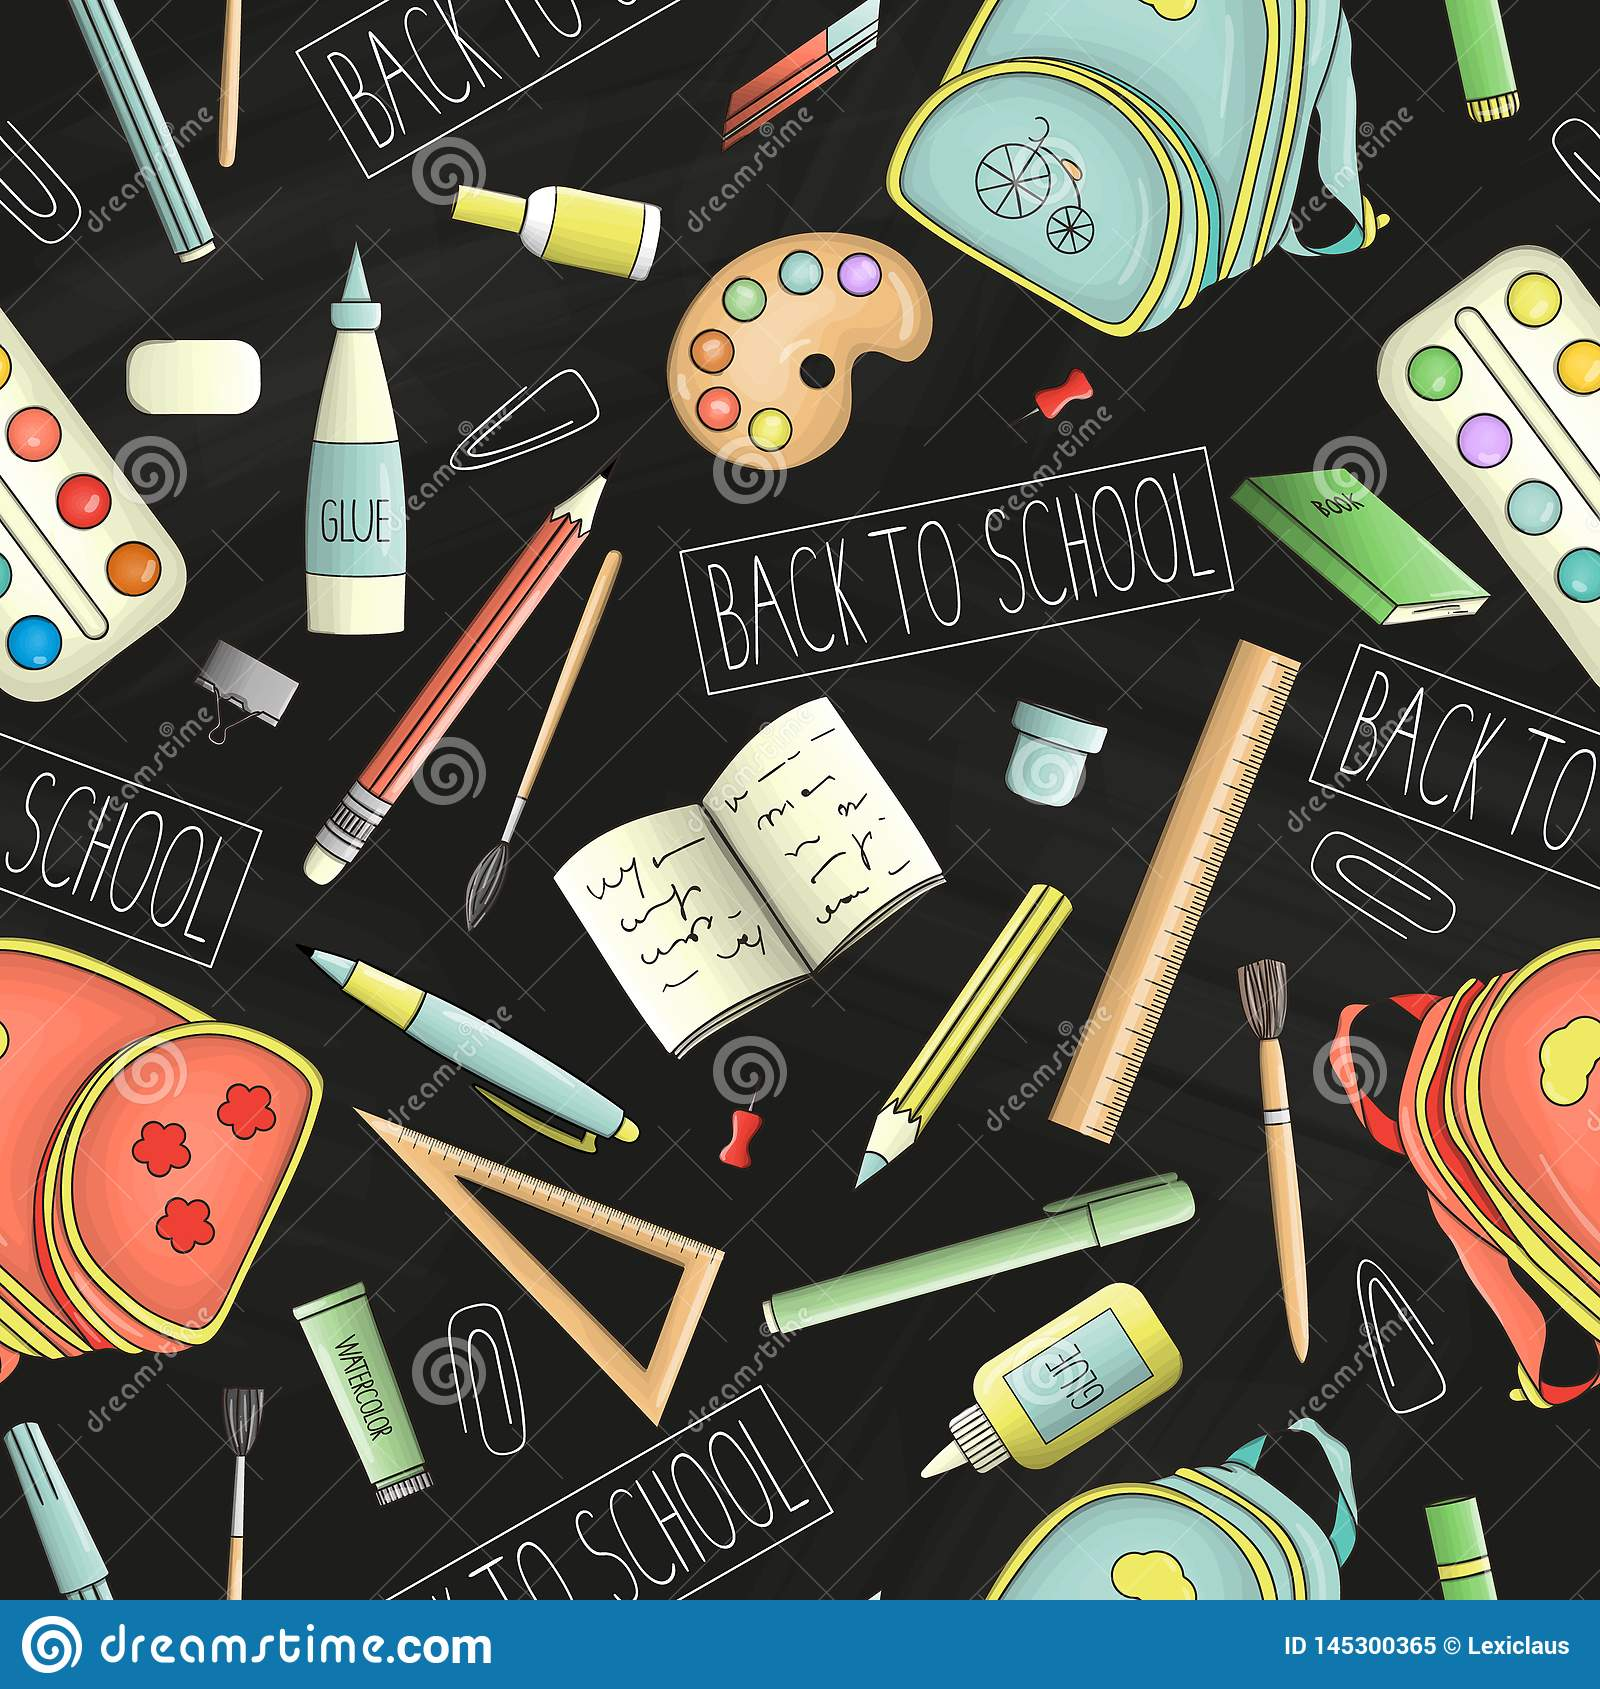 Vector seamless pattern of colored stationery, office or school supplies on chalkboard background. Back to school repeat backdrop